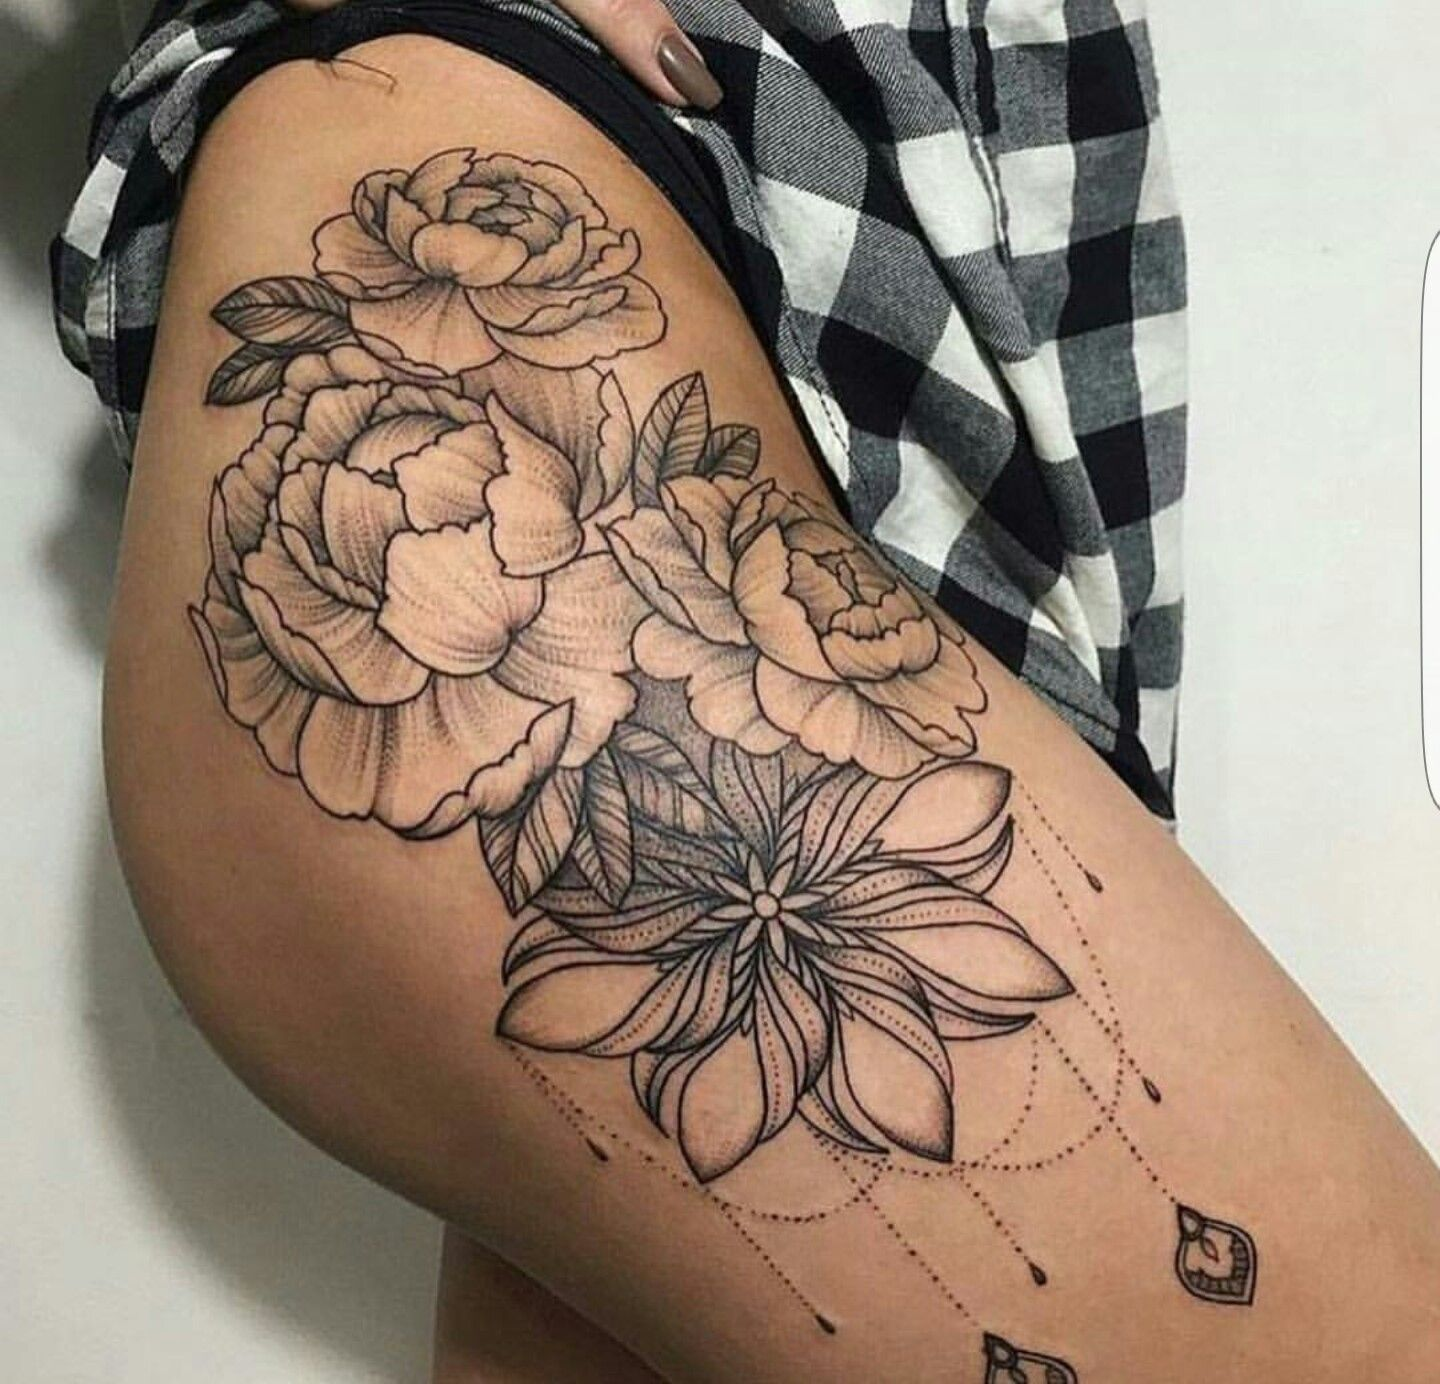 Pin ni alondra aguirre sa b o d y a r t pinterest tattoo ink hip tattoos mermaid tattoos lotus tattoo couple tattoos world maps tattoo ideas ink legs gumiabroncs Image collections